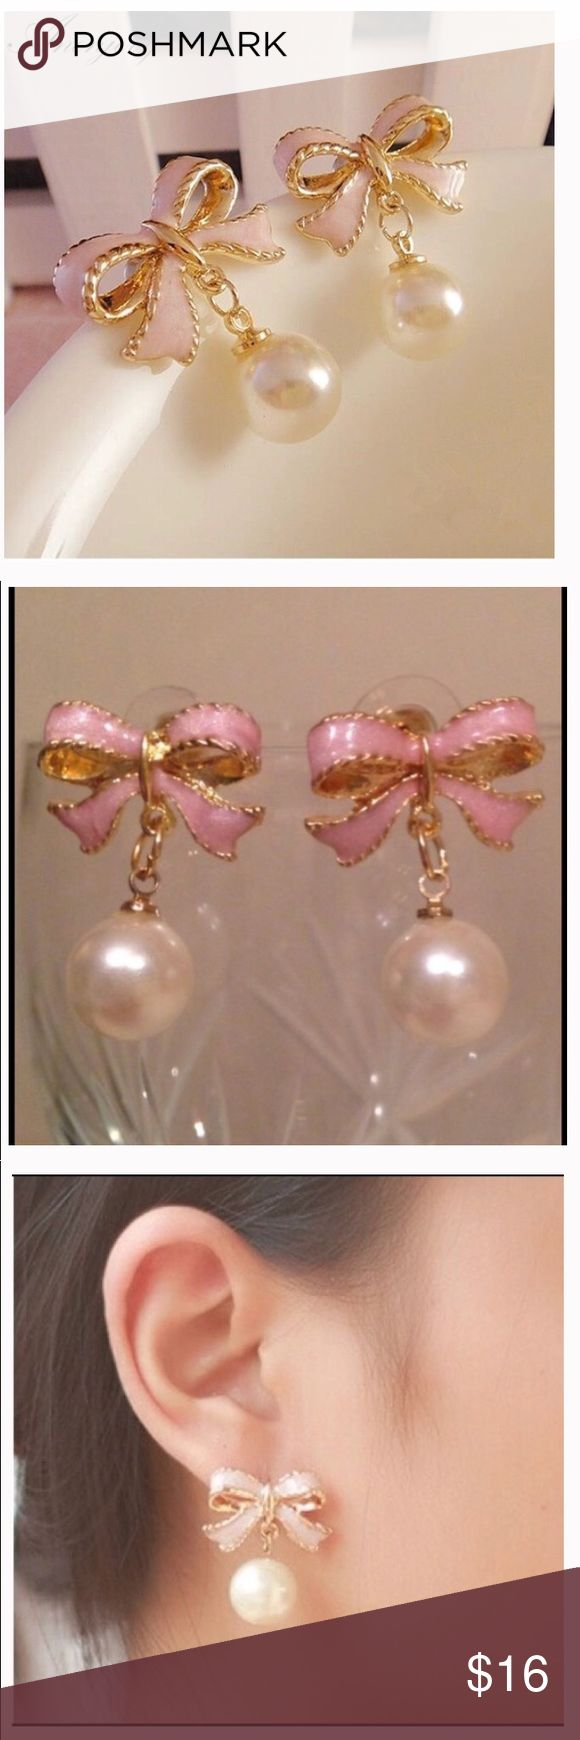 Girls Pink Enamel & Pear Drop Earrings High Quality Delicate Gold Color Pink Drops Of Oil Butterfly Bow Knot Pearl Stud Earrings For Women queenesthershop Accessories Jewelry